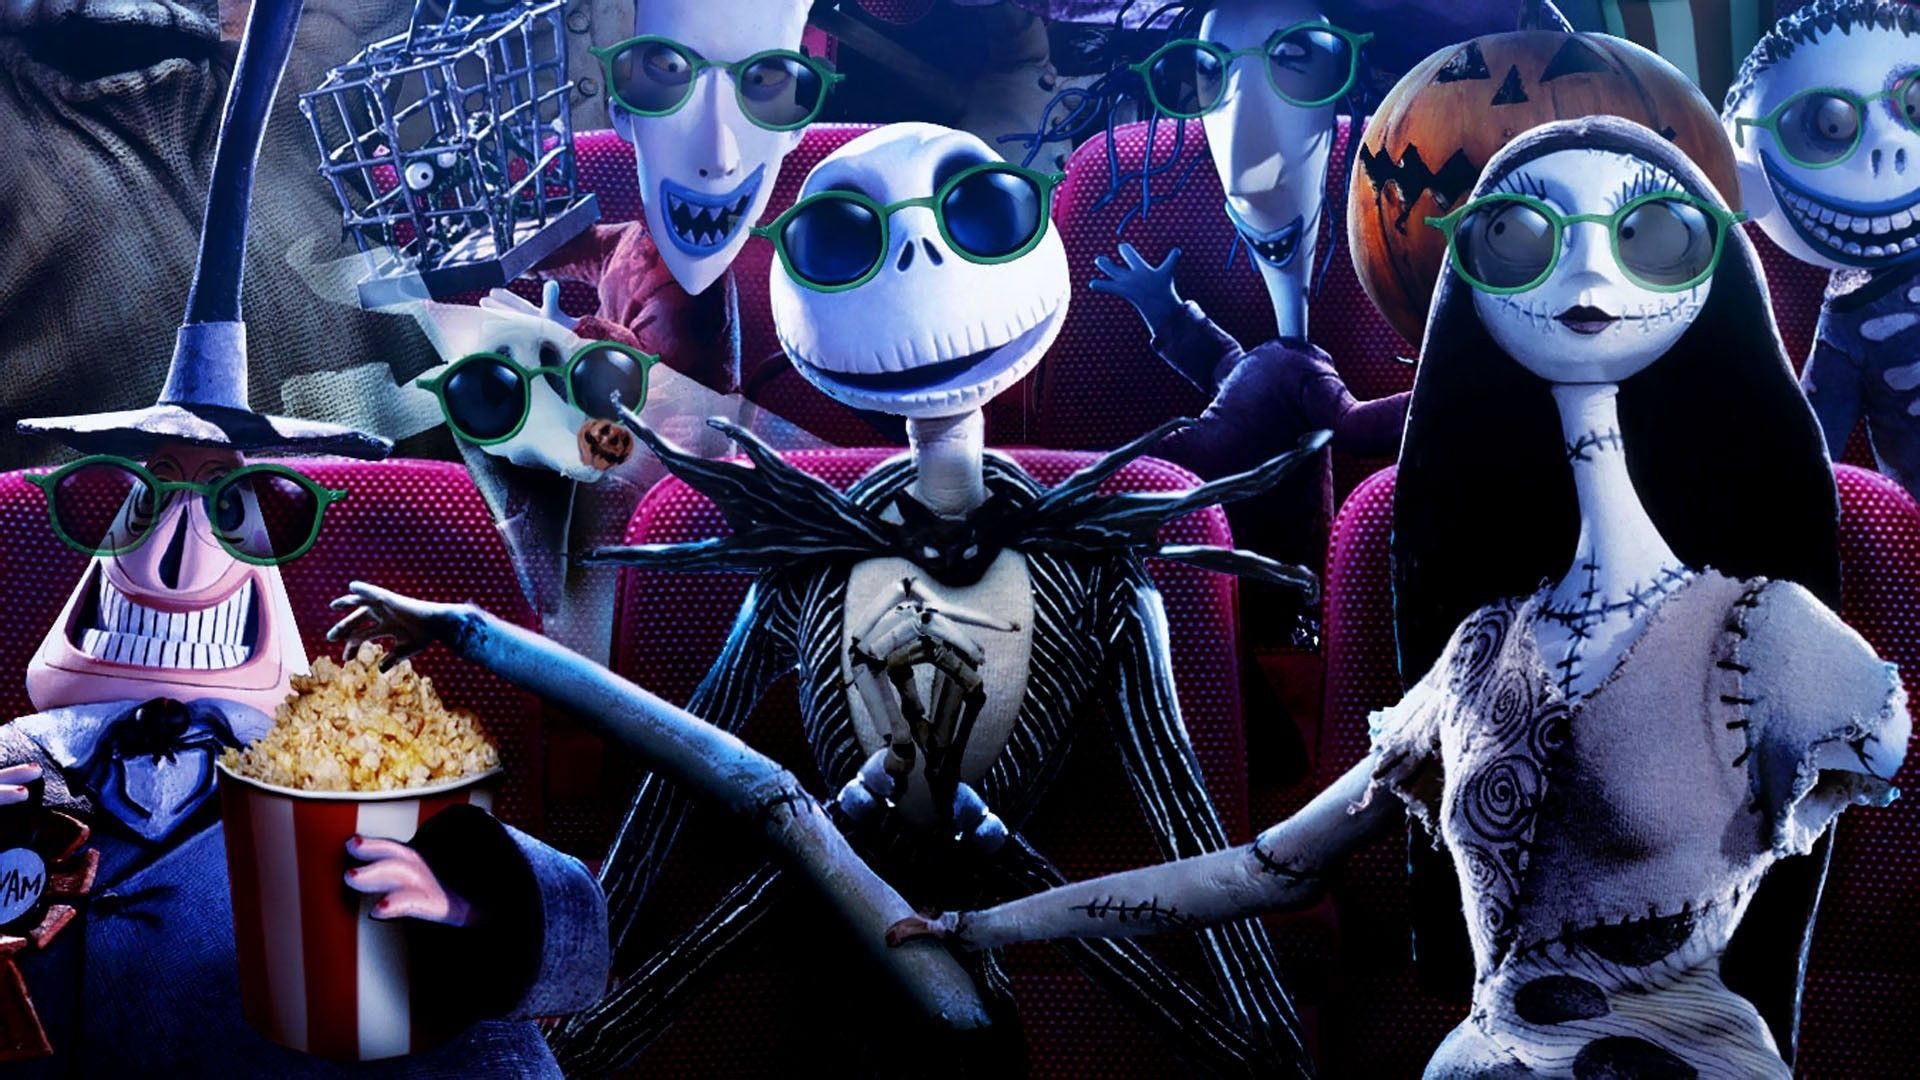 nightmare before christmas hd The Nightmare Before